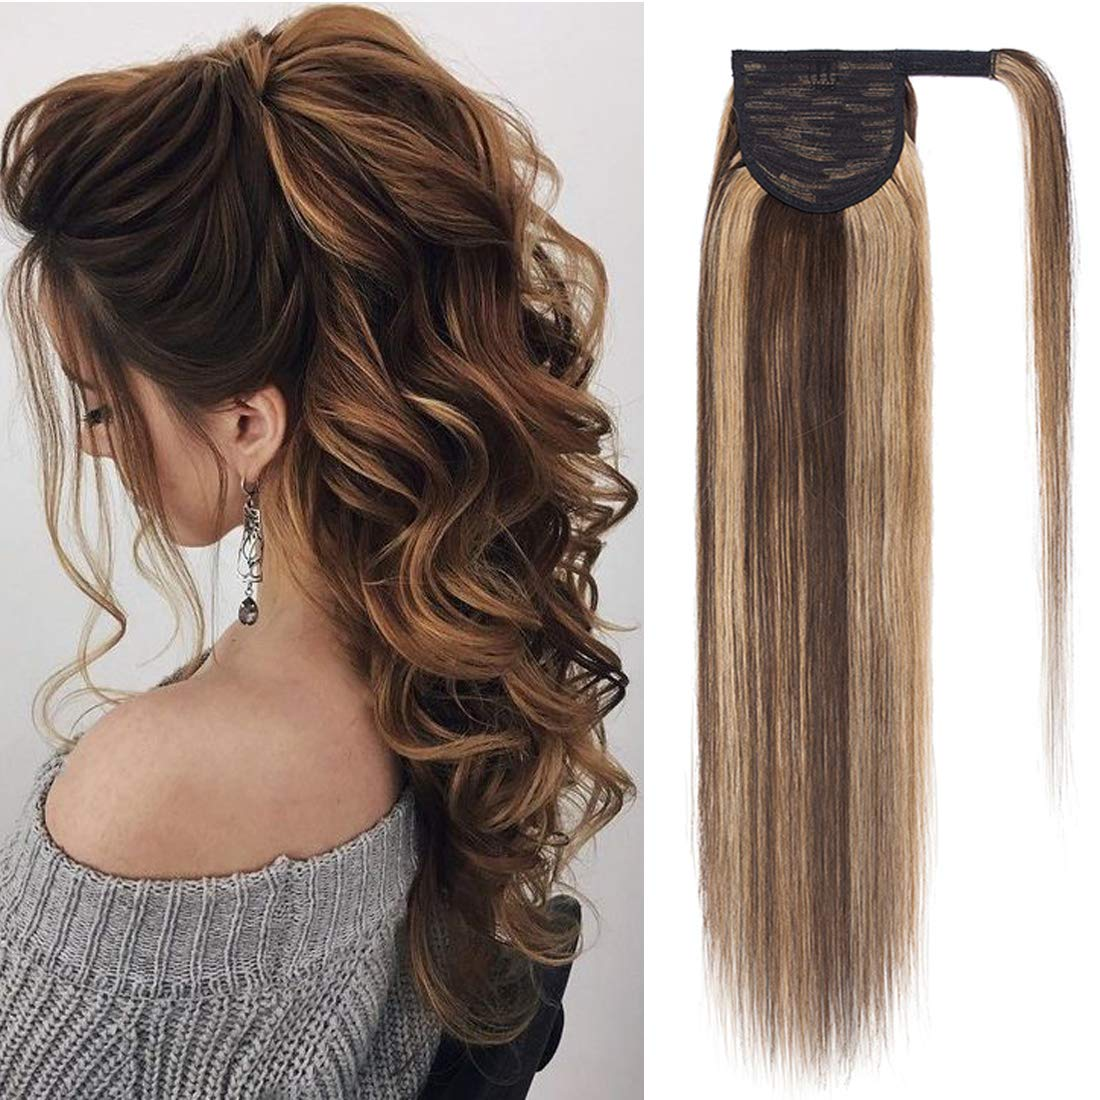 S-noilite Ponytail 70% OFF Complete Free Shipping Outlet Extension Human Hai Around Wrap Hair